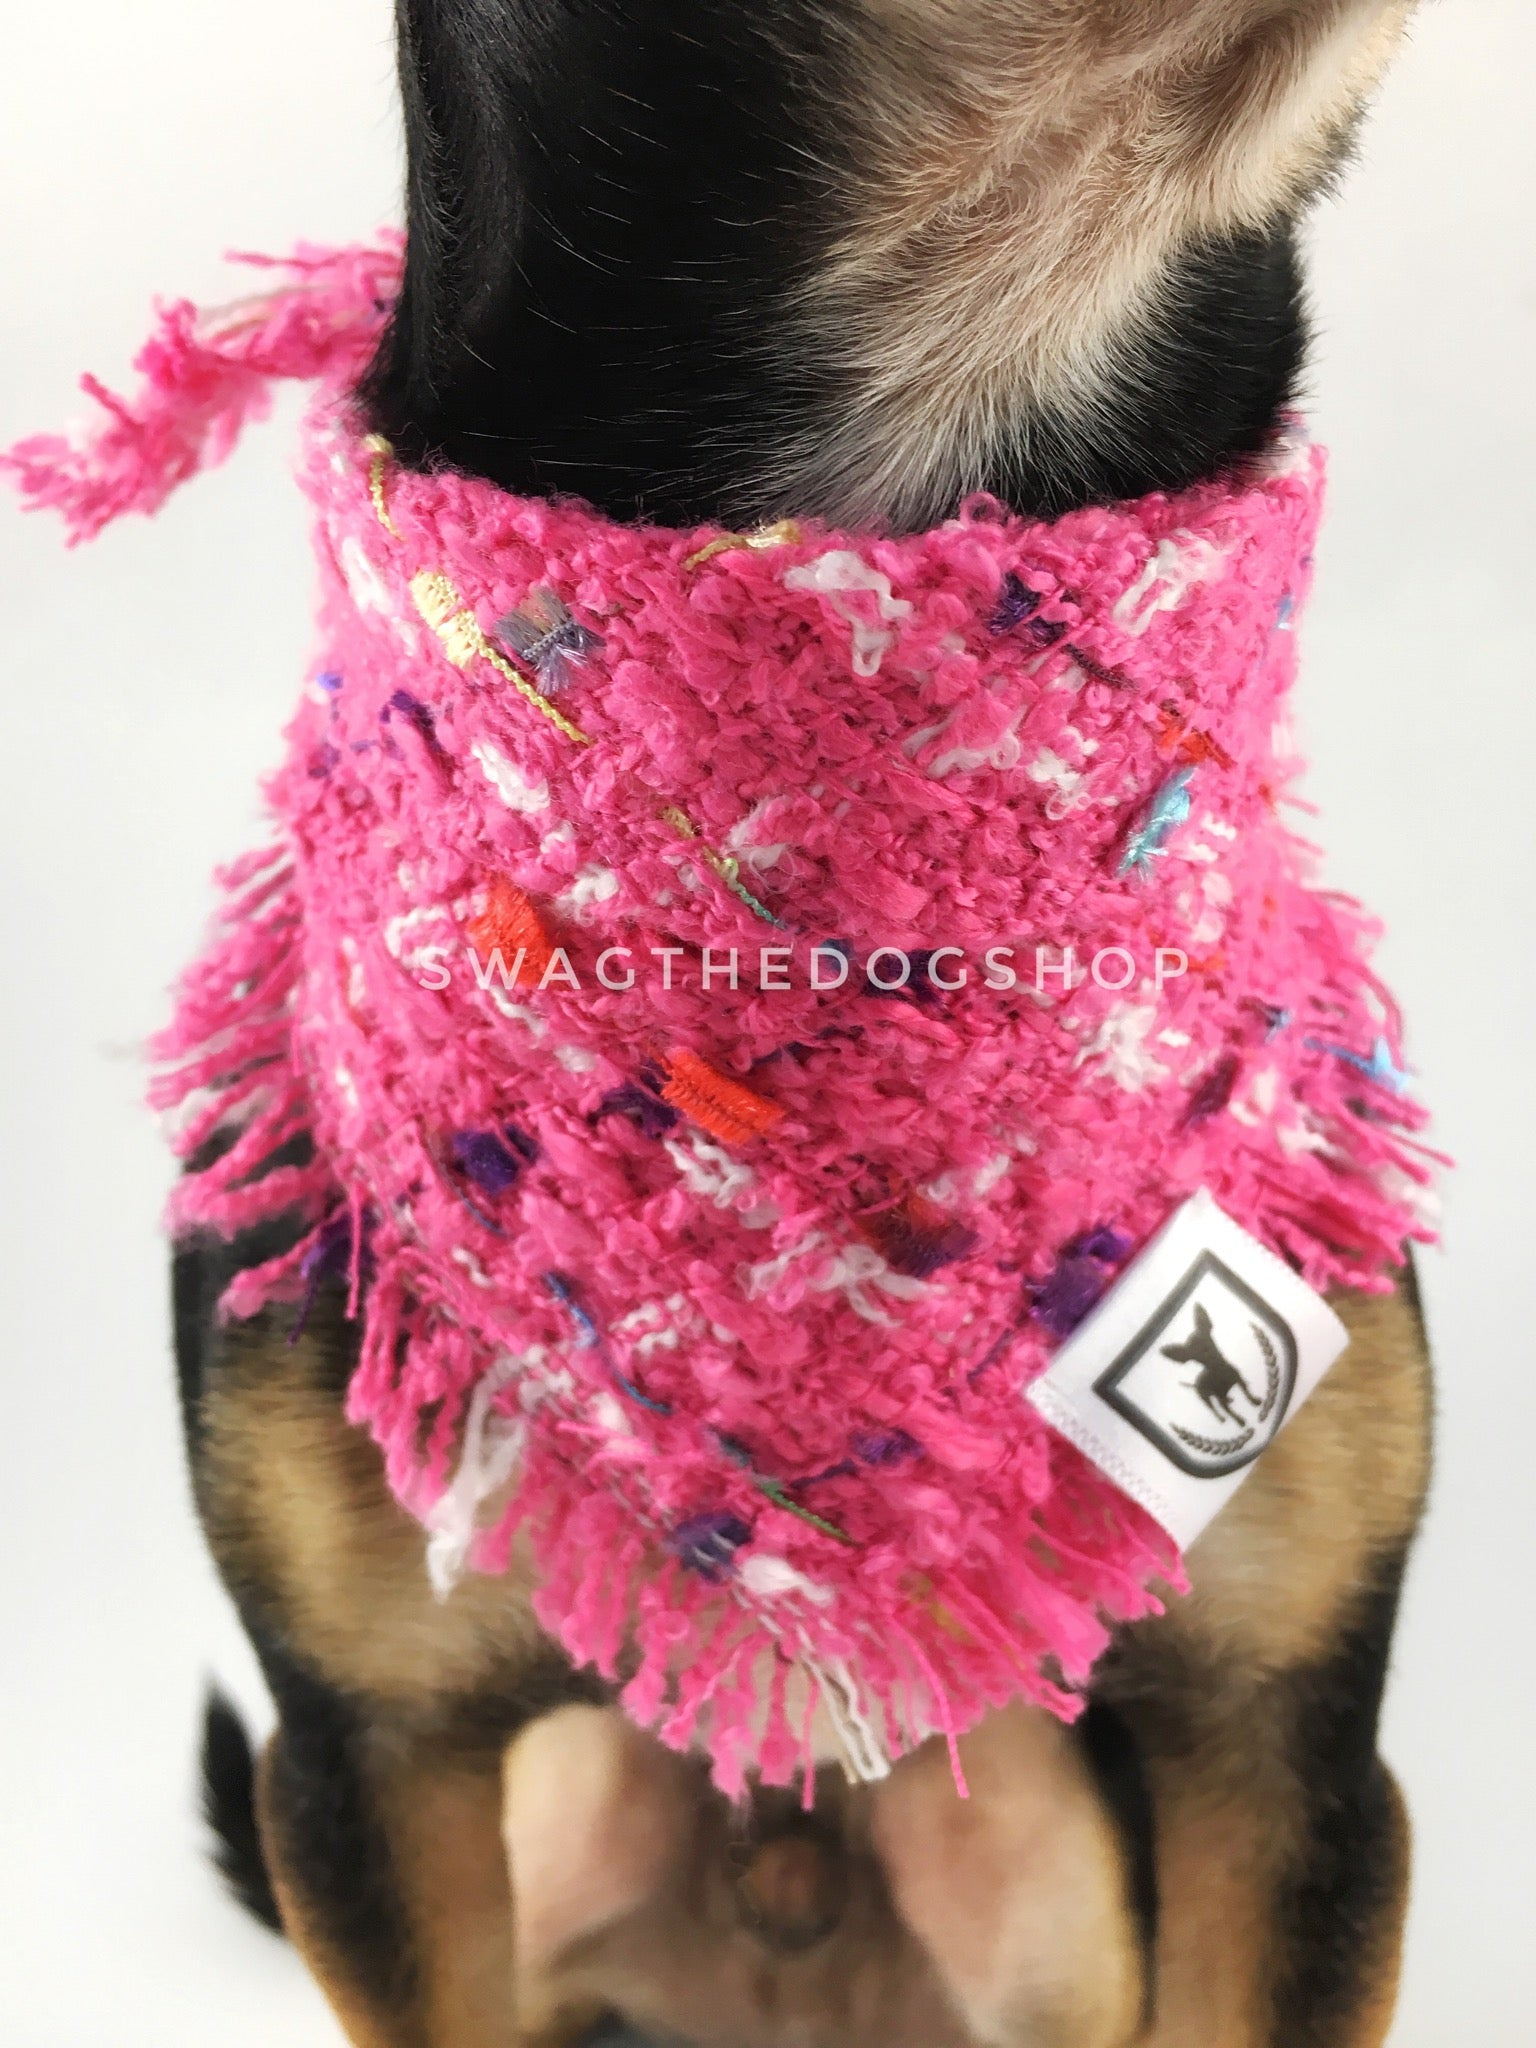 Hot Pink Tweed Swagdana with Frayed Edges - Neck Close-up of Cute Chihuahua Wearing Swagdana. Dog Bandana. Dog Scarf